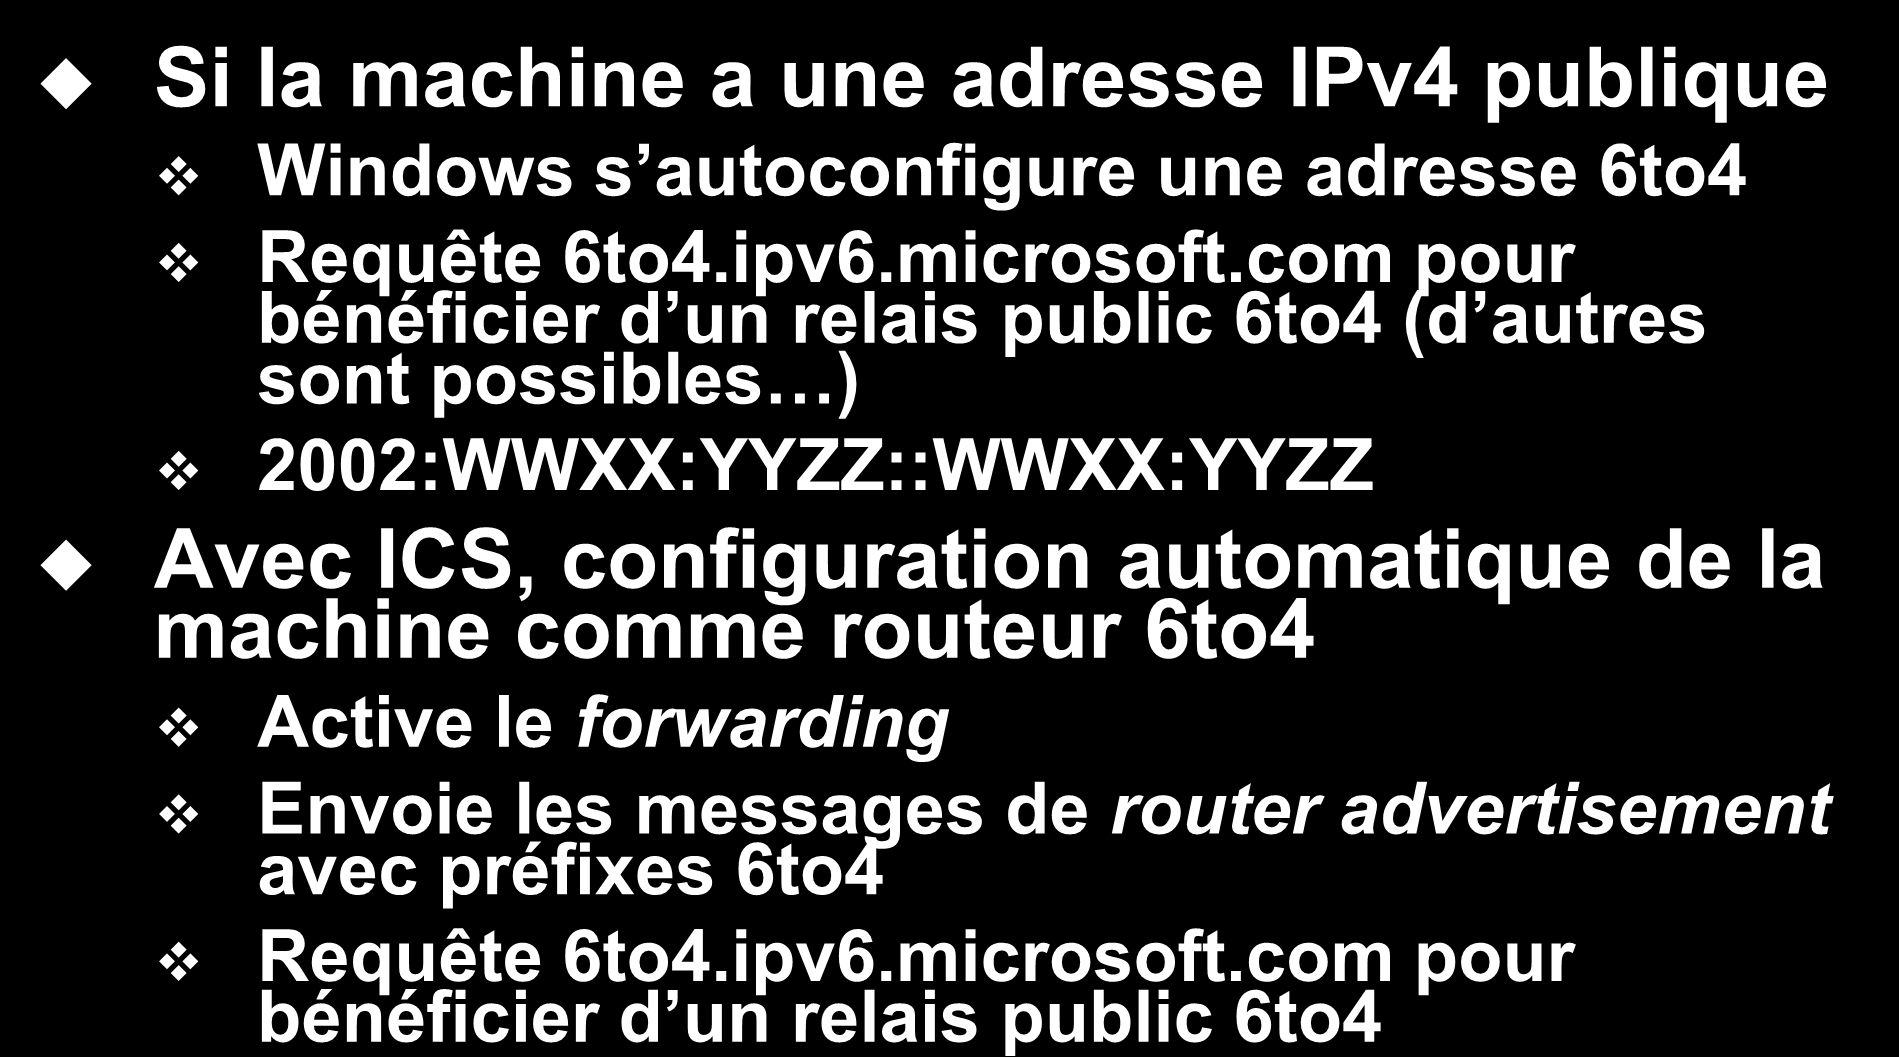 Support de 6to4 dans Windows Si la machine a une adresse IPv4 publique Windows s autoconfigure une adresse 6to4 Requête 6to4.ipv6.microsoft.